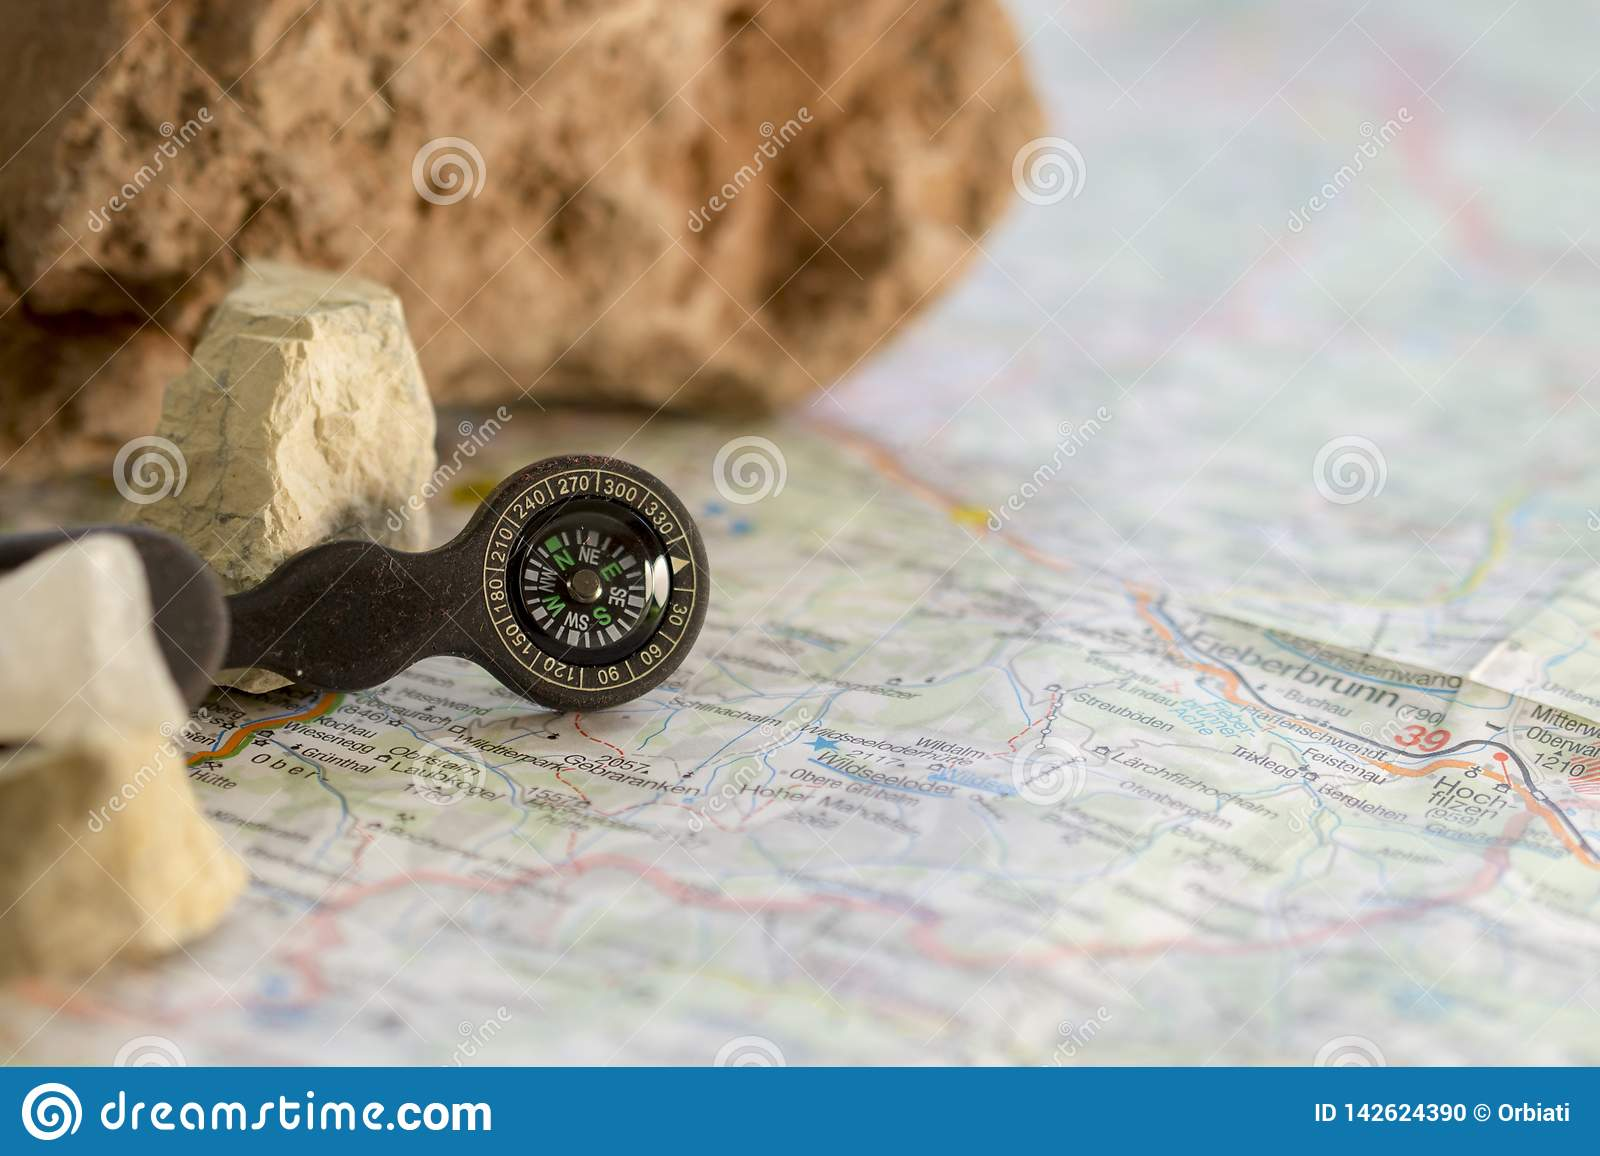 GPS in the old days.